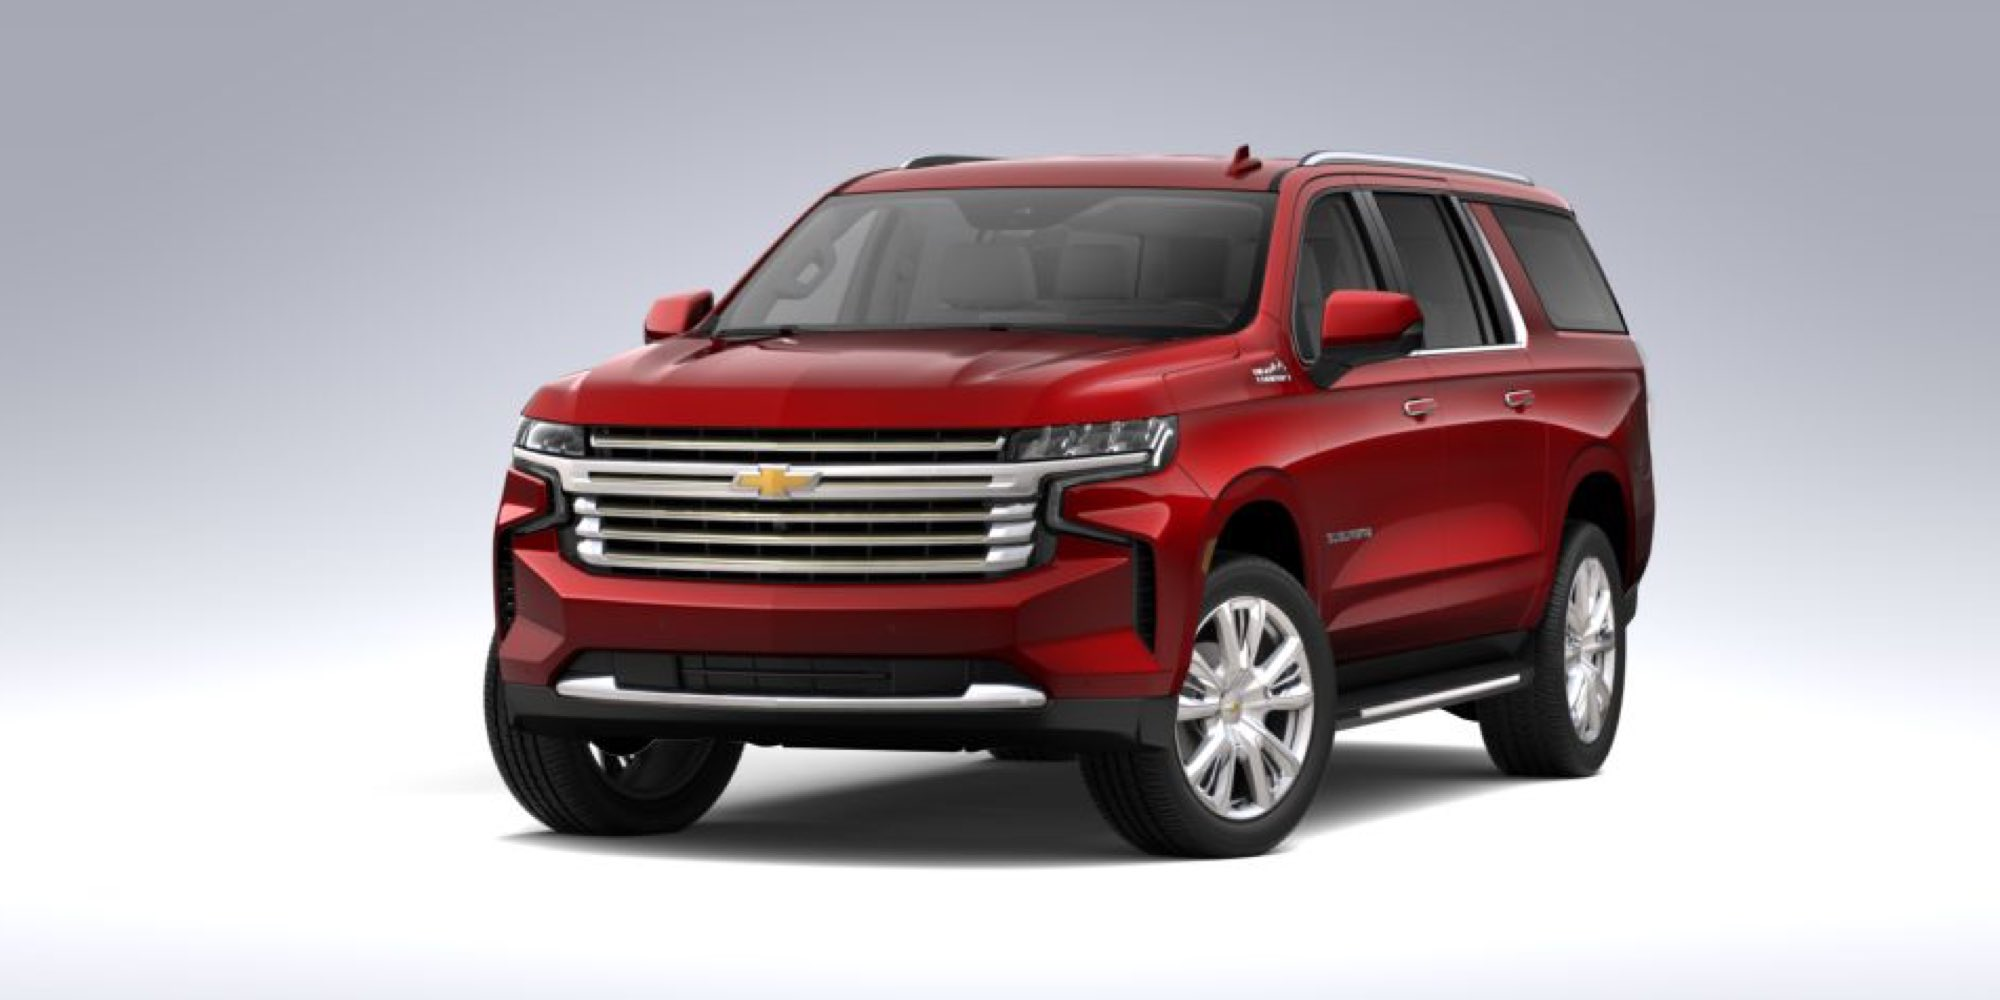 2021 Chevy Suburban in Cherry Red Tintcoat